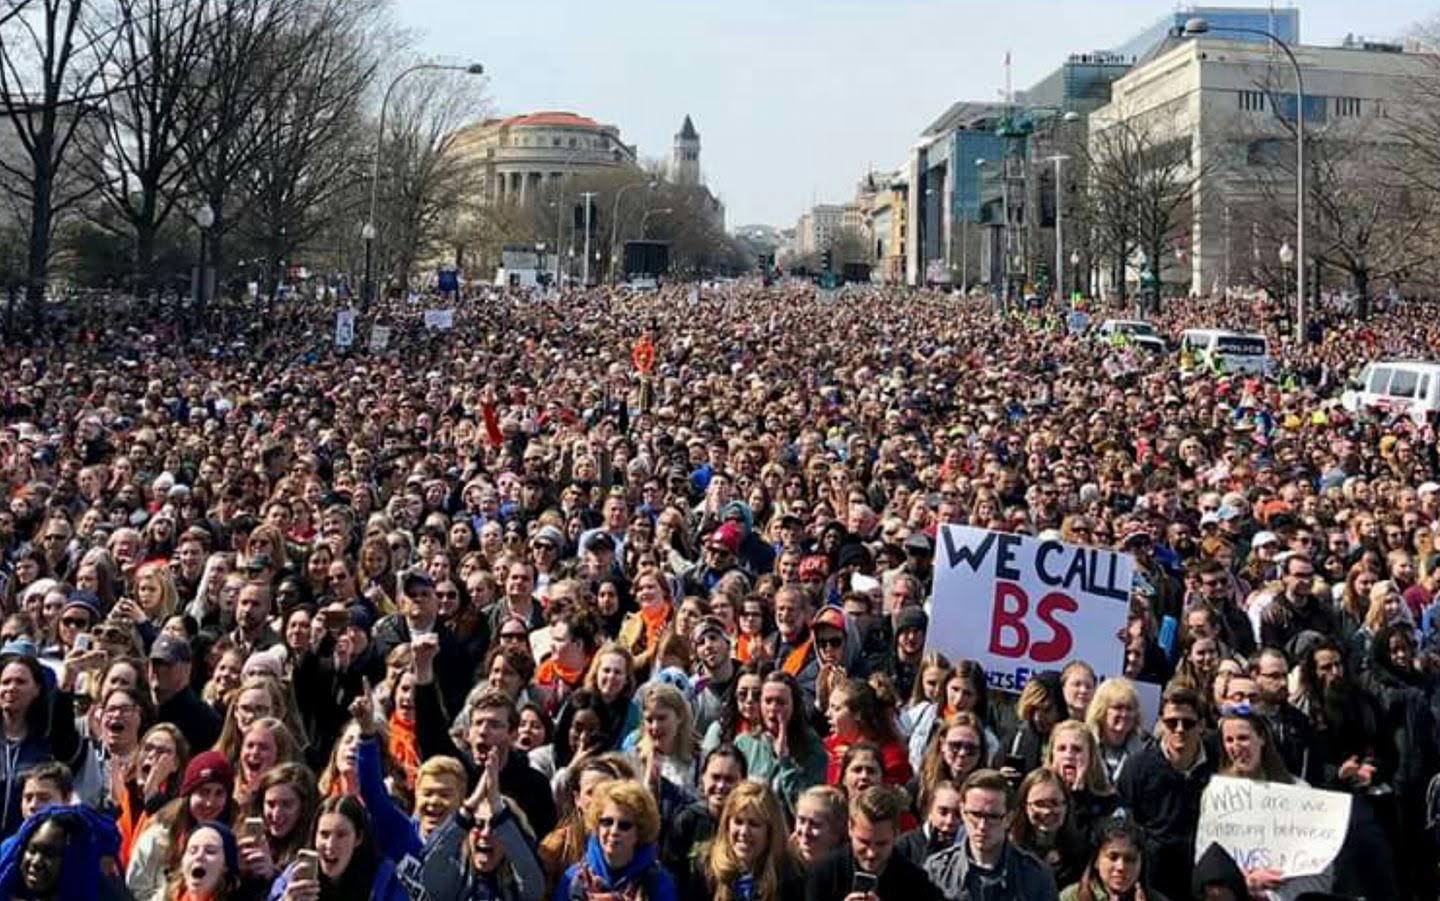 Massive crowds descend on Washington to demand gun control